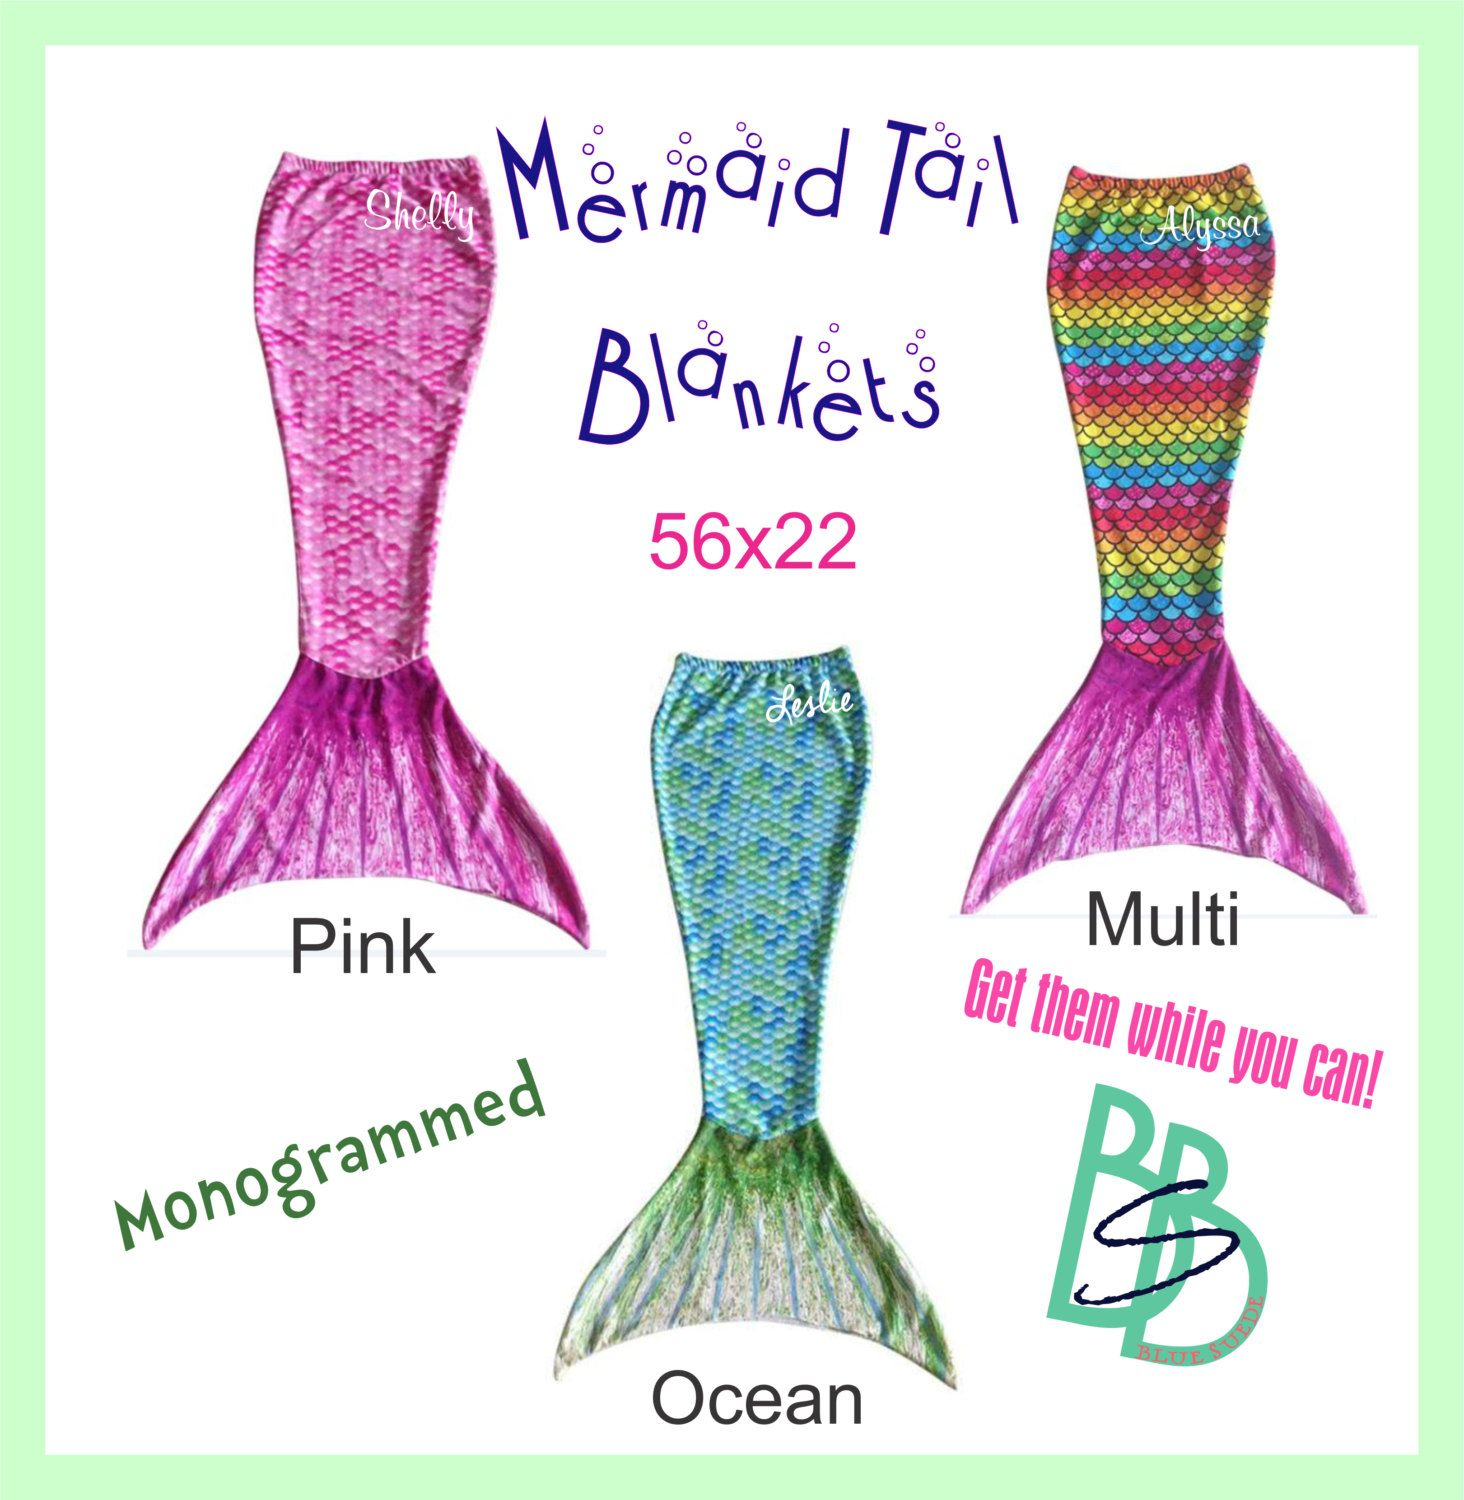 Mermaid Tail Blankets - Monogrammed Embroidered - Great Gift for Children  this Christmas